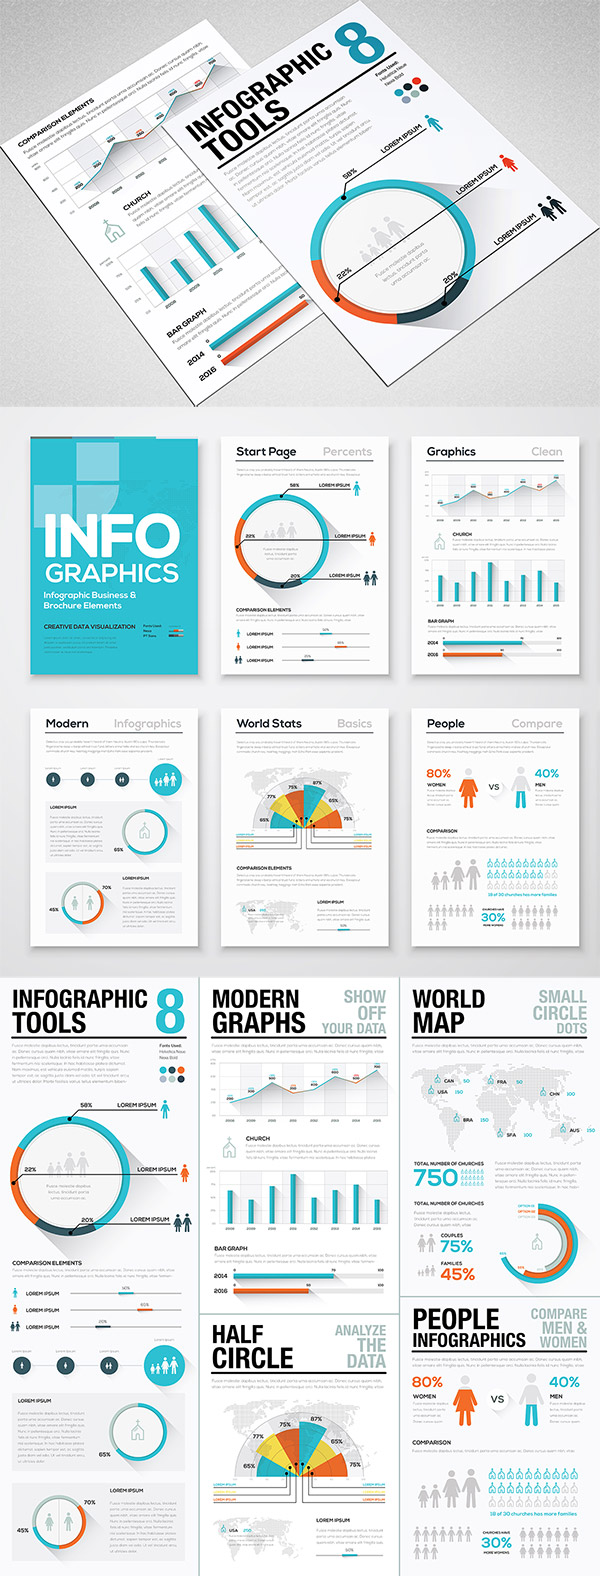 Infographic Tools preview